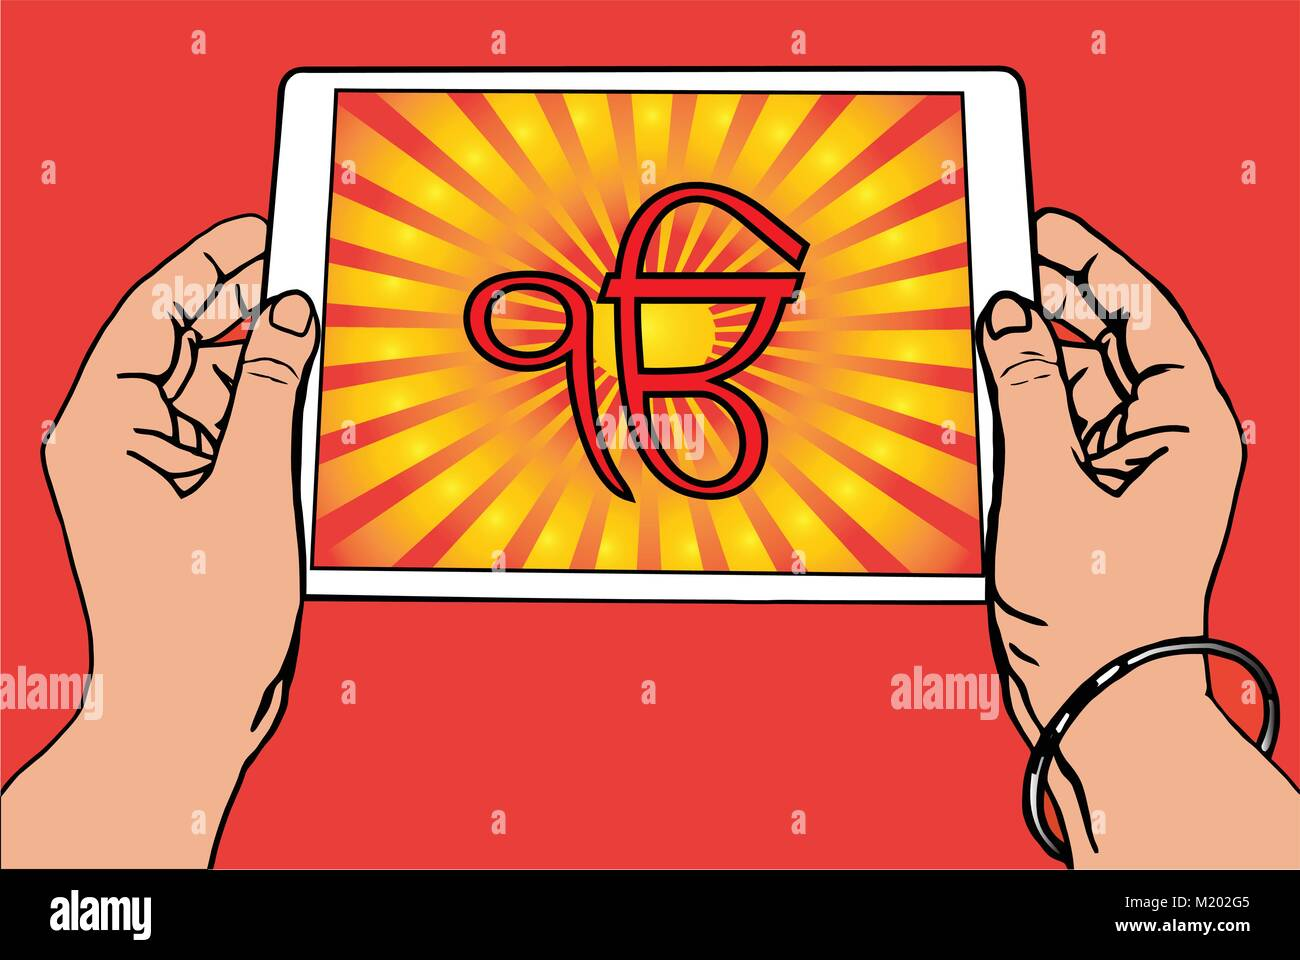 Hands holding a tablet on which the Ek Onkar is the symbol of Sikhism. Red and gold gradient rays, red background. - Stock Vector